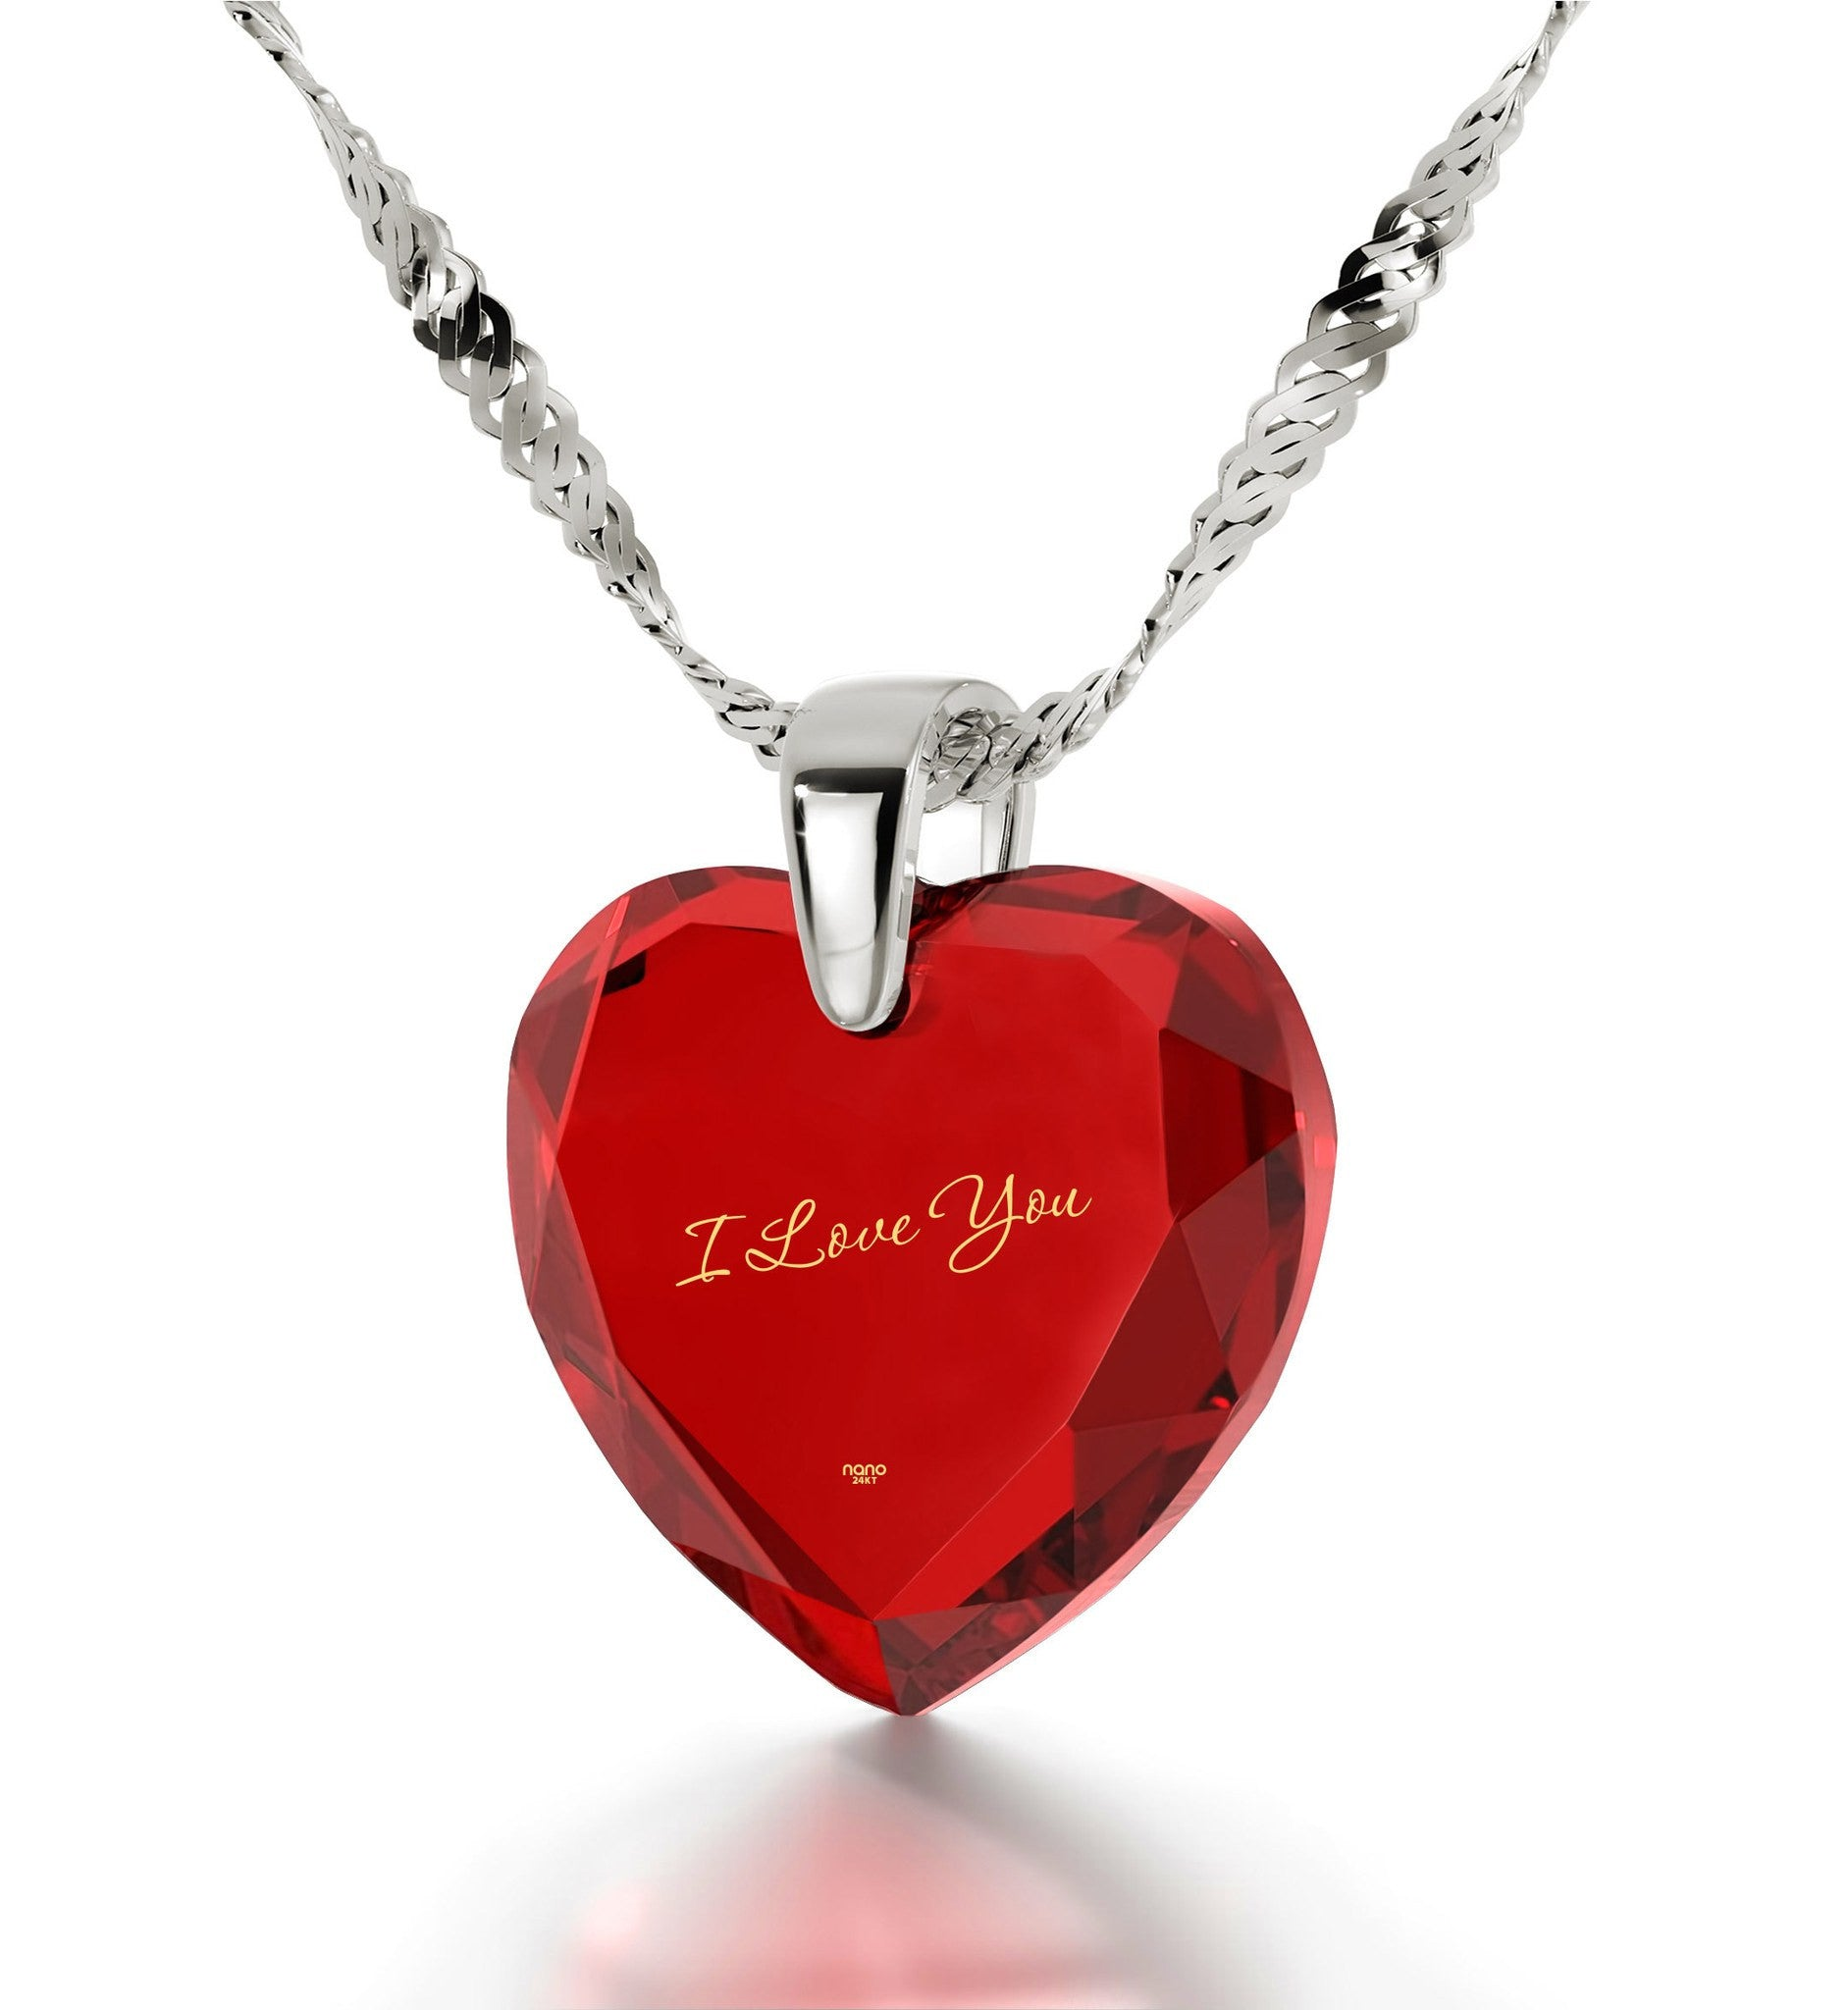 Great Valentines Gifts for Her, Red Heart Jewelry with 14k White Gold Chain, Cute Necklaces for Girlfriend